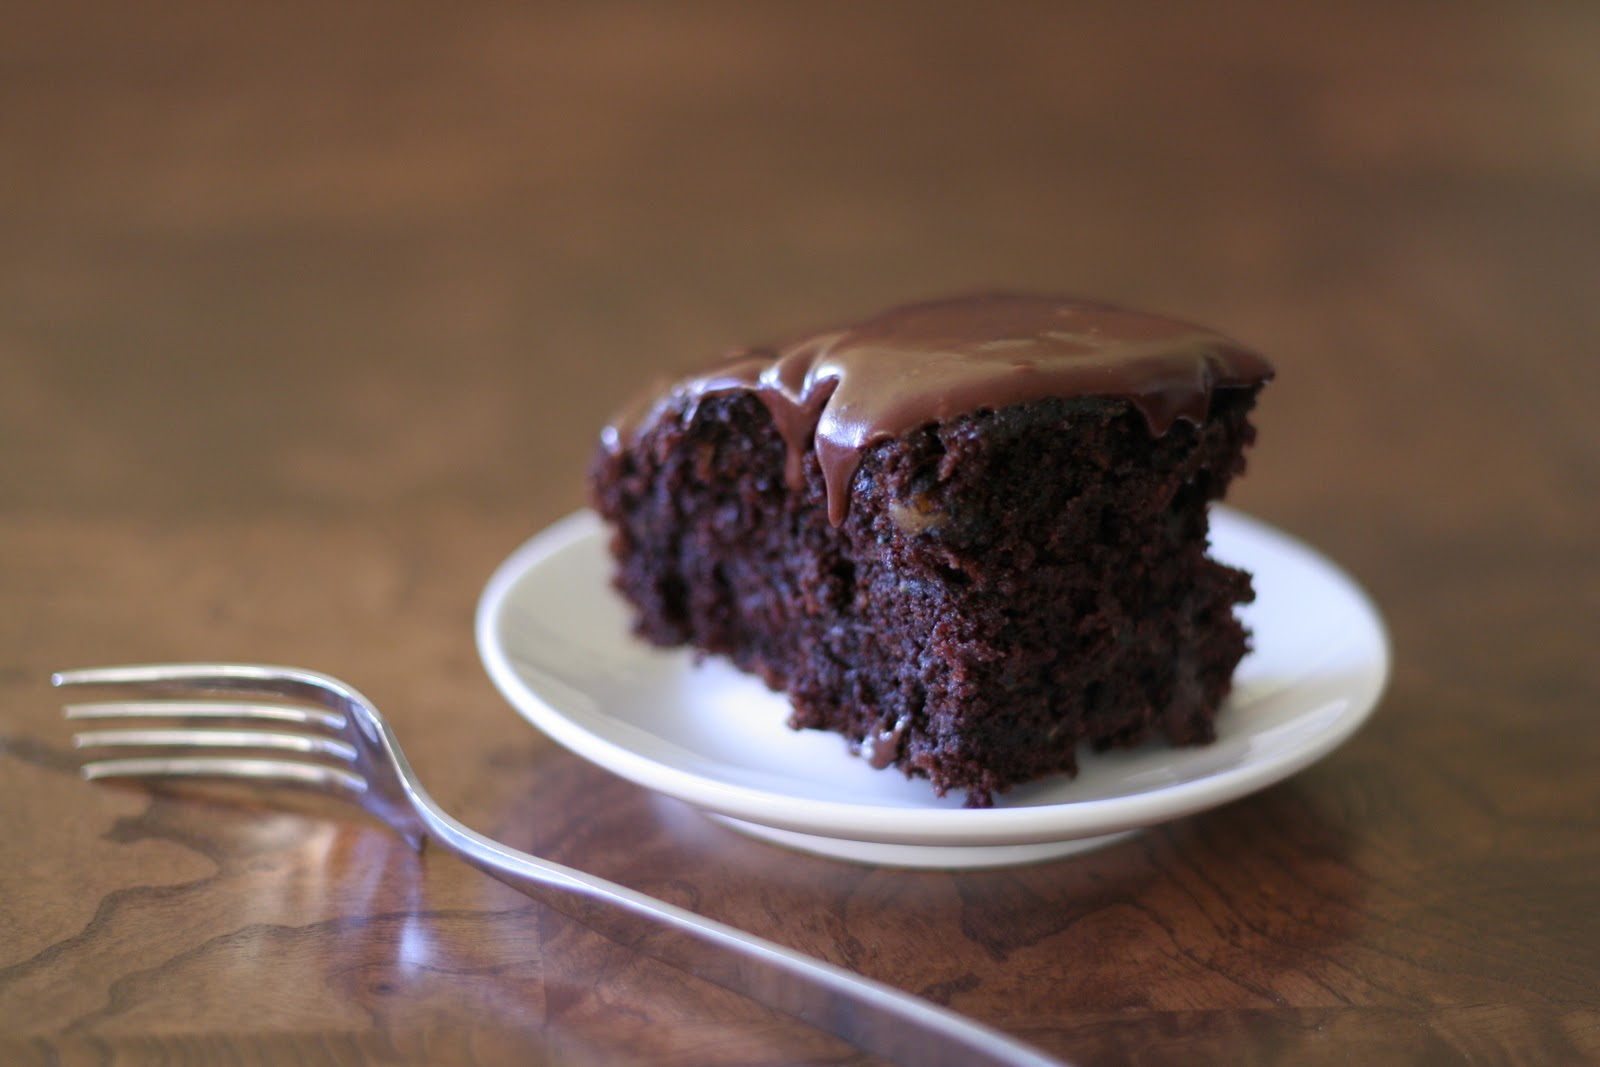 Plump Me Up: Never Too Much Chocolate!